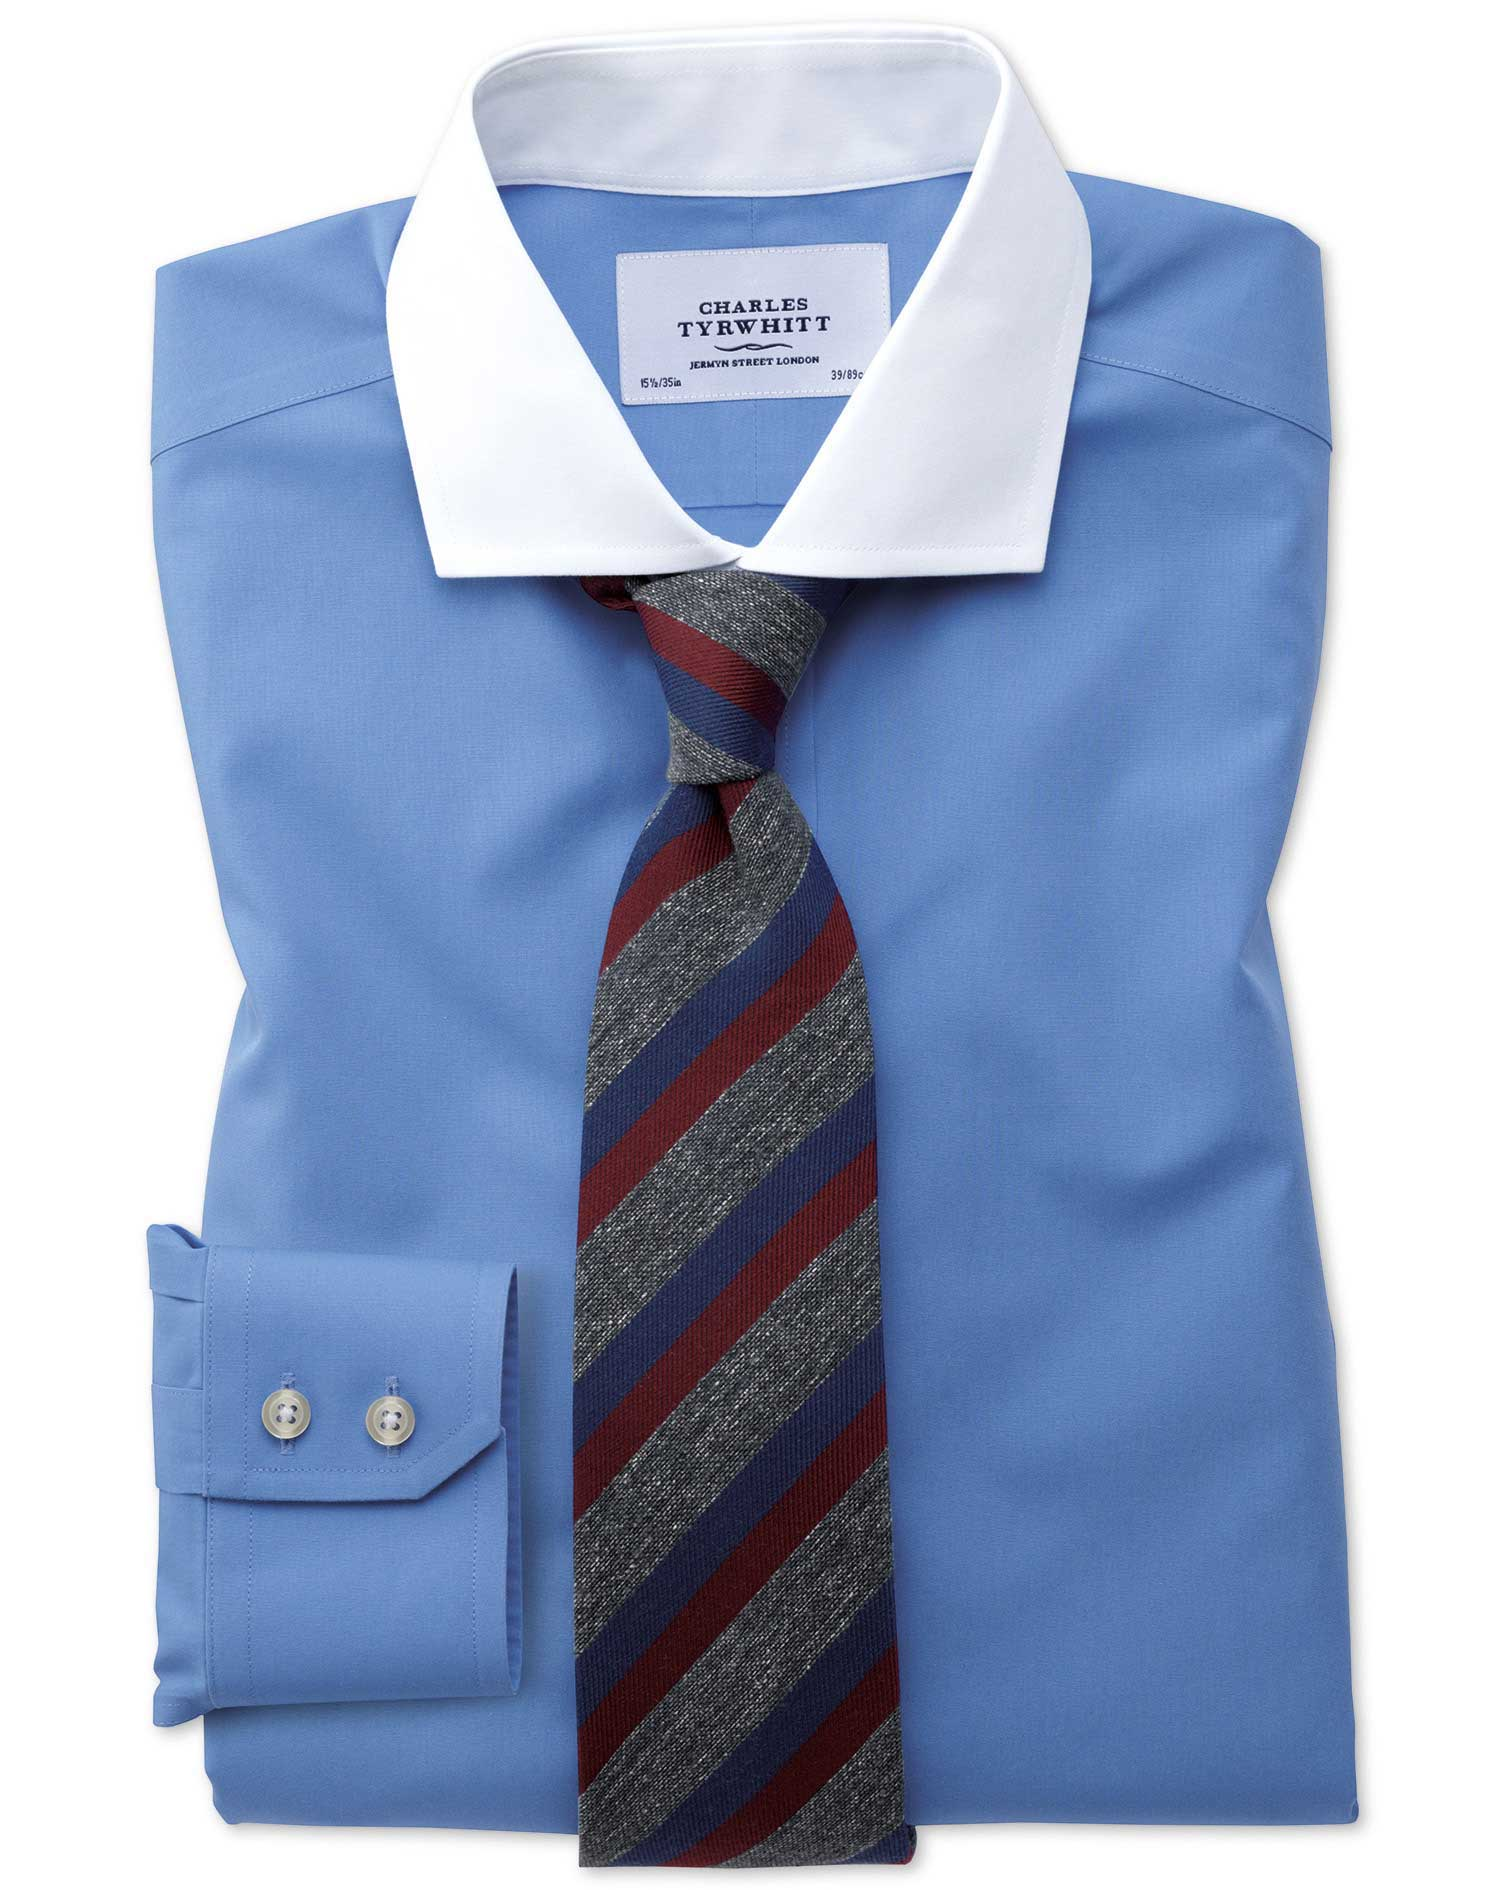 Slim fit spread collar non iron winchester blue shirt for Dress shirt collar fit